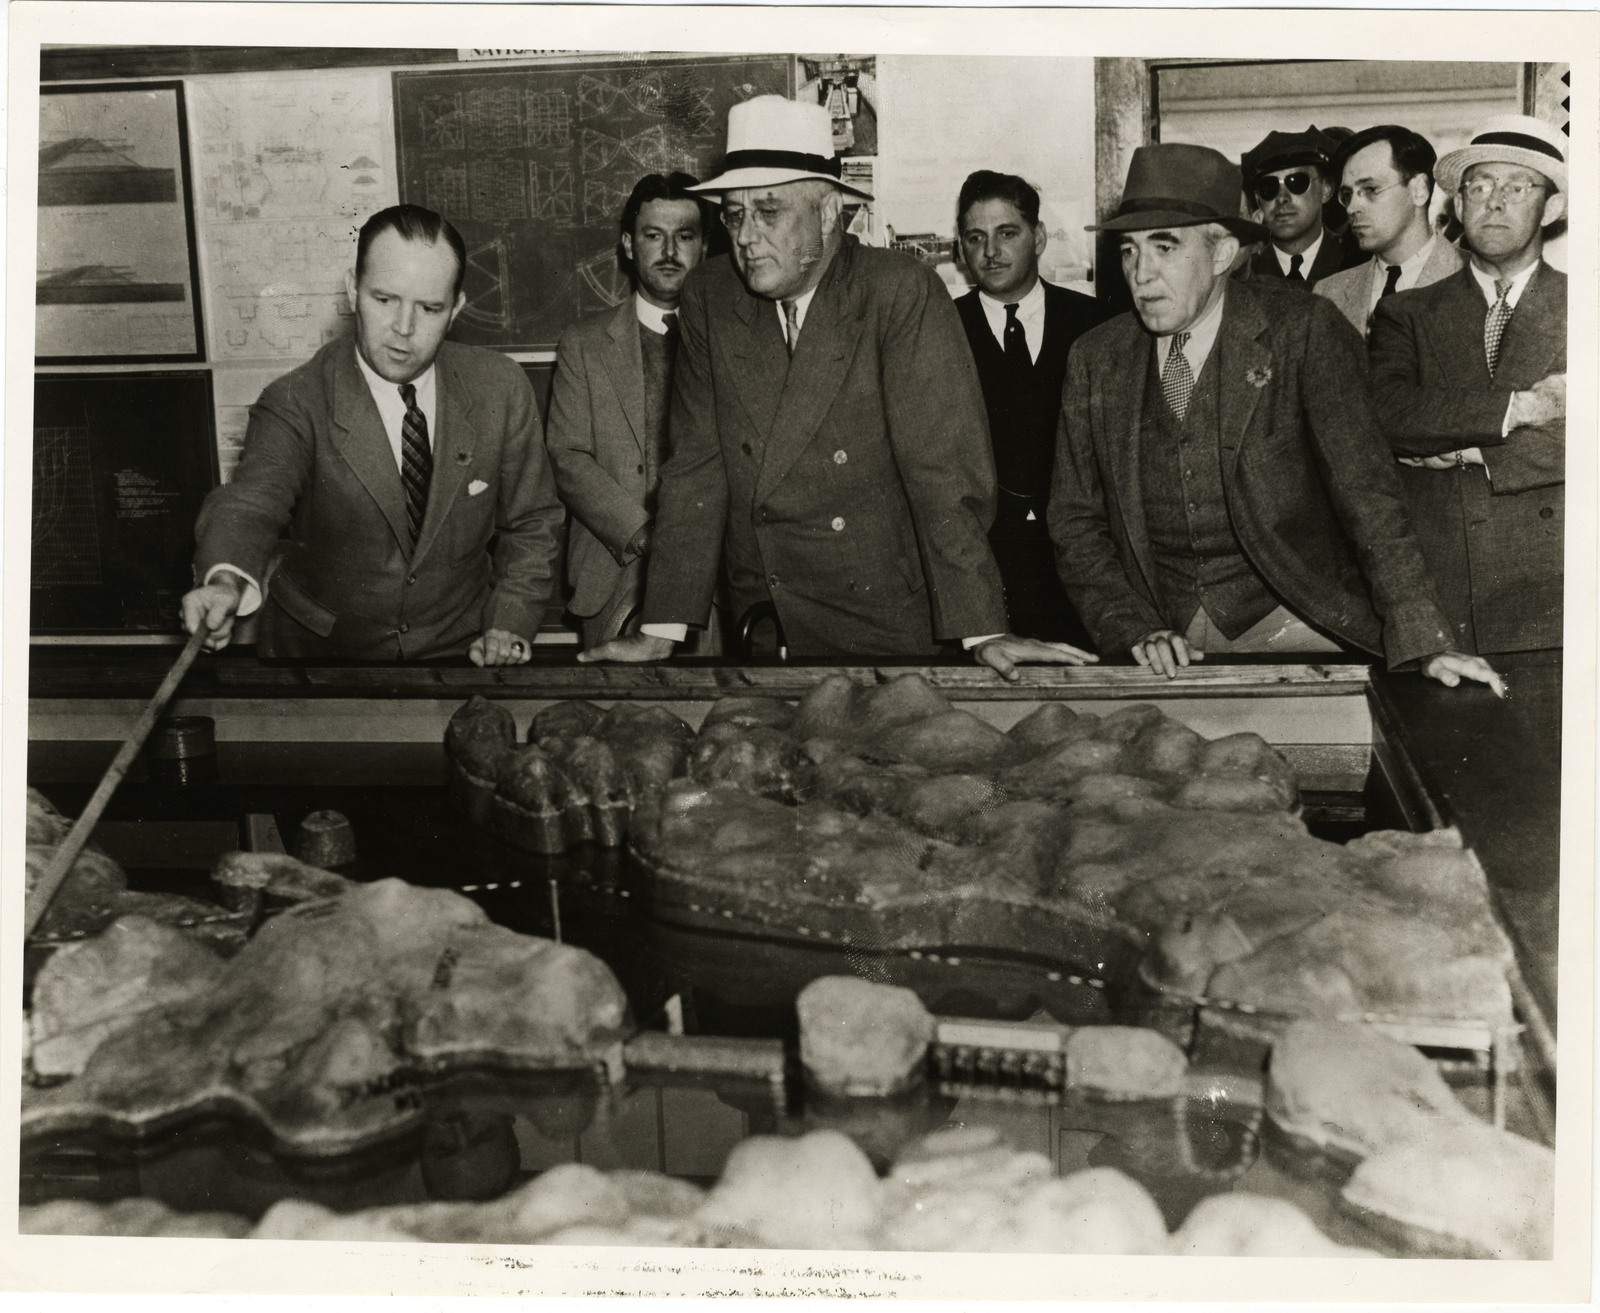 President Franklin Delano Roosevelt Looking over the Model of the Passamaquoddy Tidal Power Project